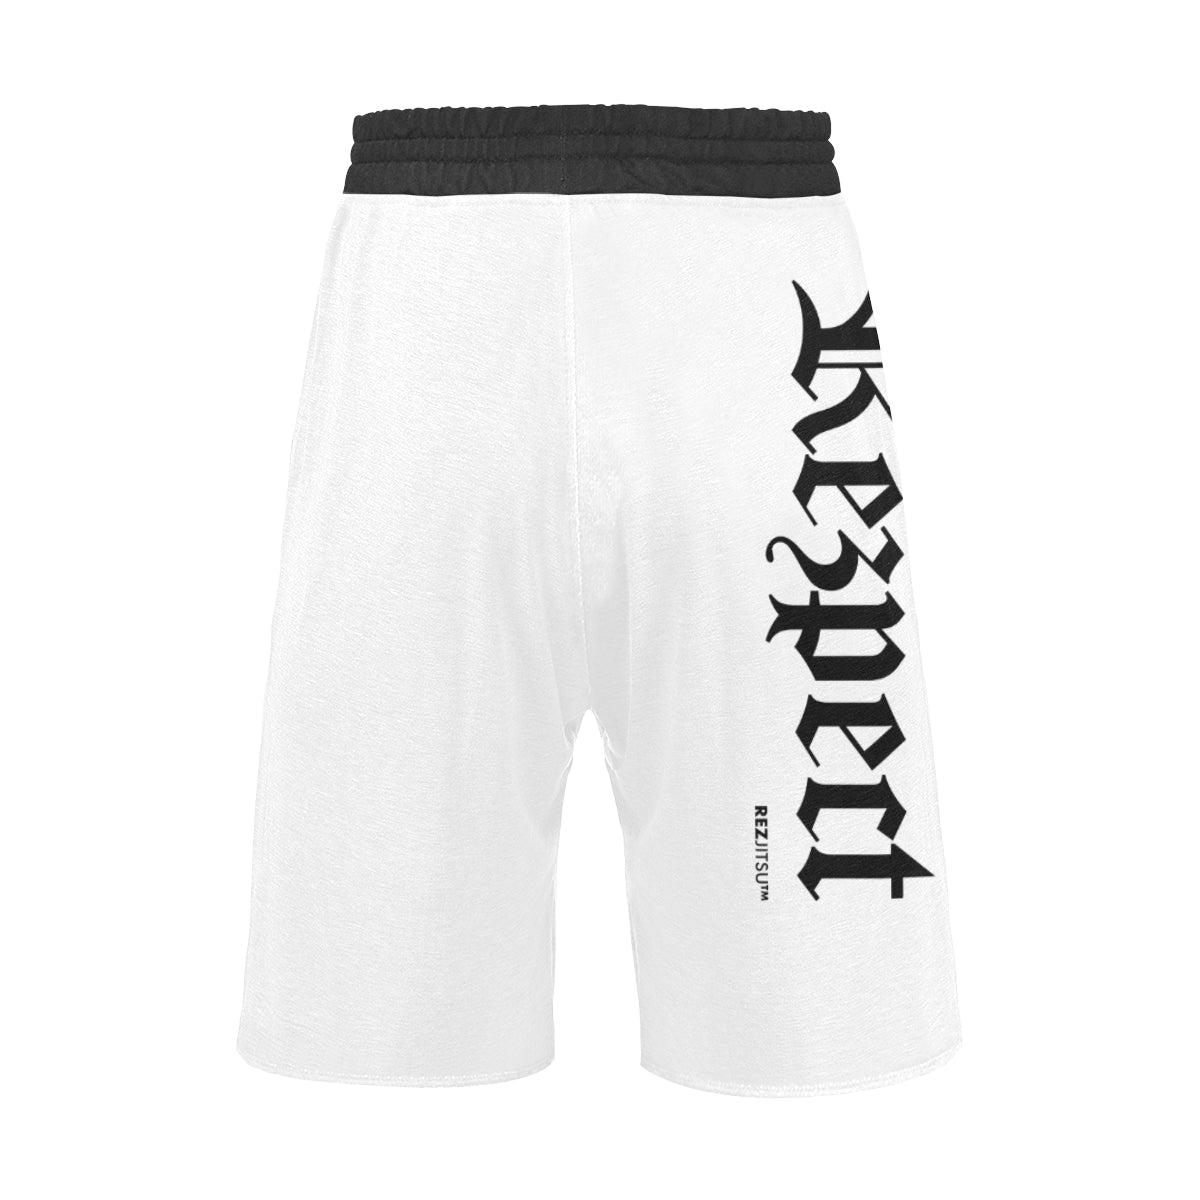 REZPECT Shorts